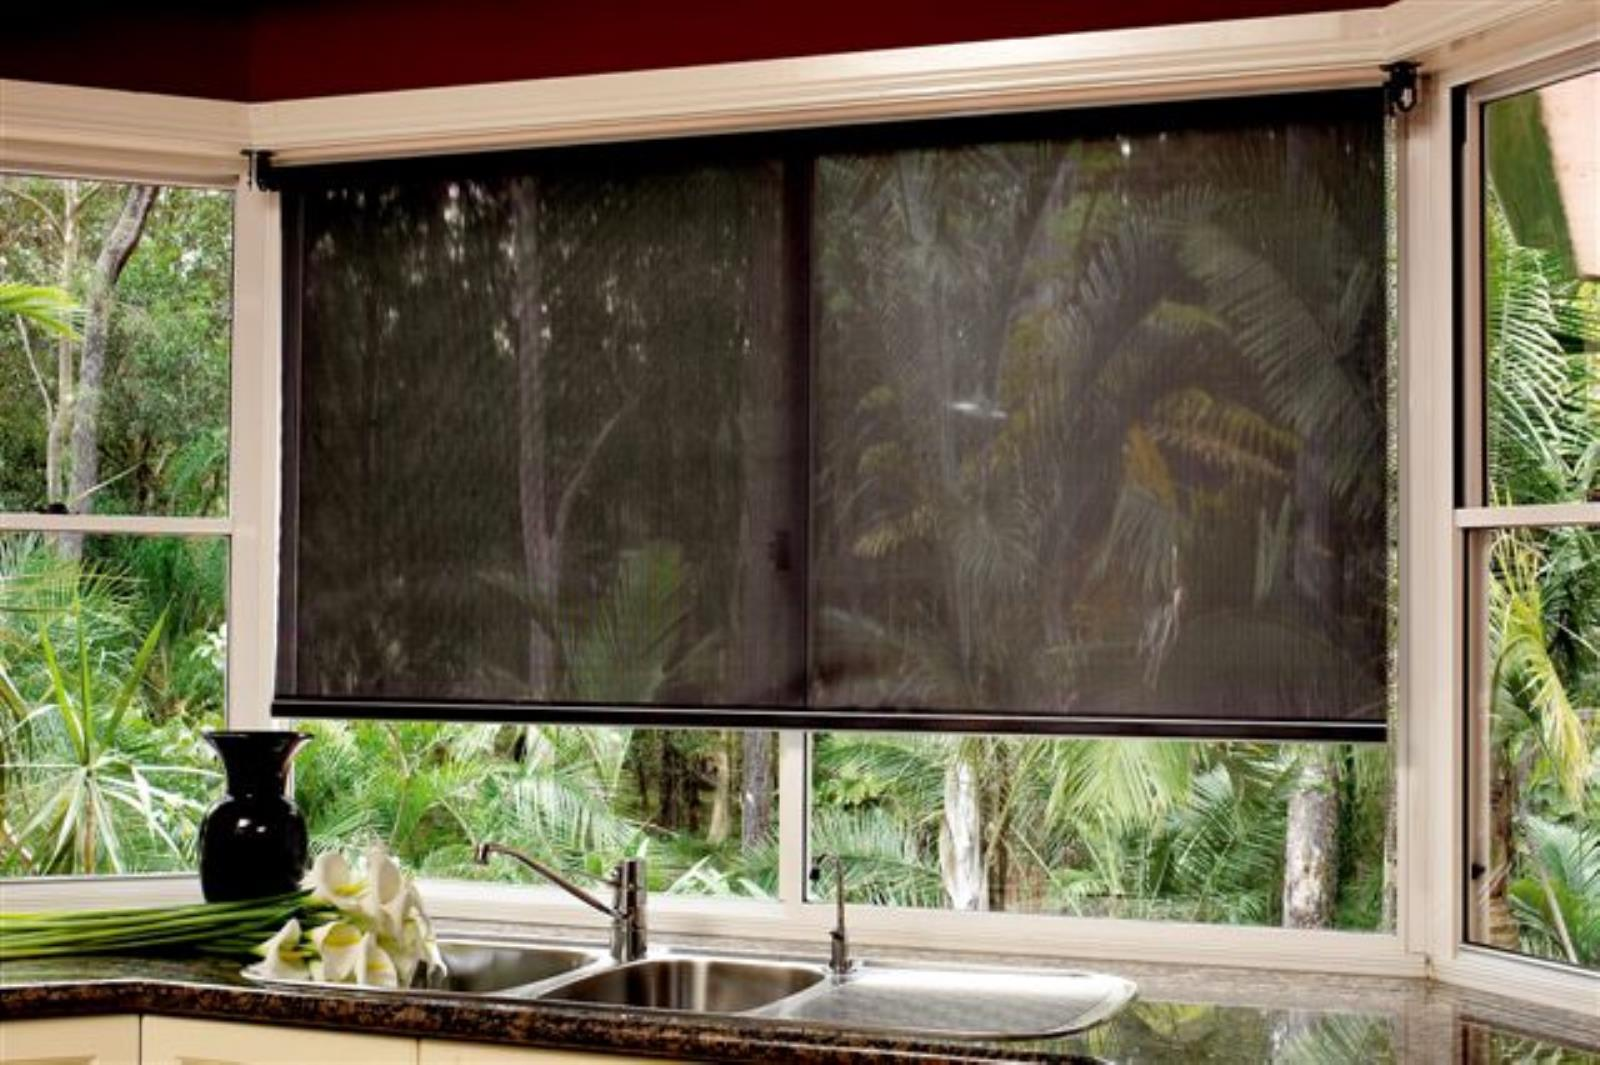 solar rolled screens partial sun ers motorized away shading jose retractable ca blinds blocking san